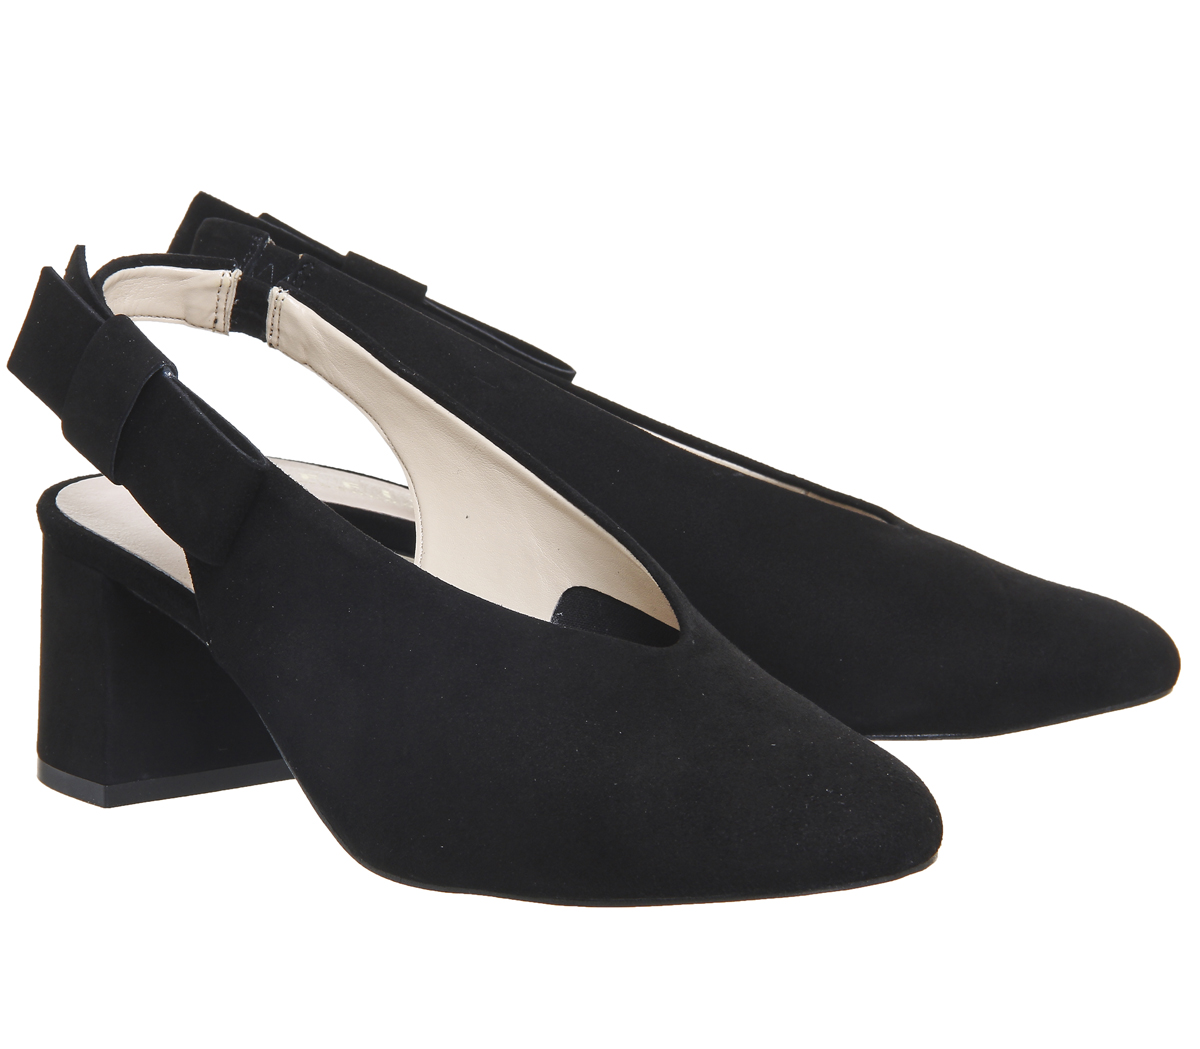 Womens-Office-Magical-Bow-Slingback-Heels-Black-Suede-Heels thumbnail 9